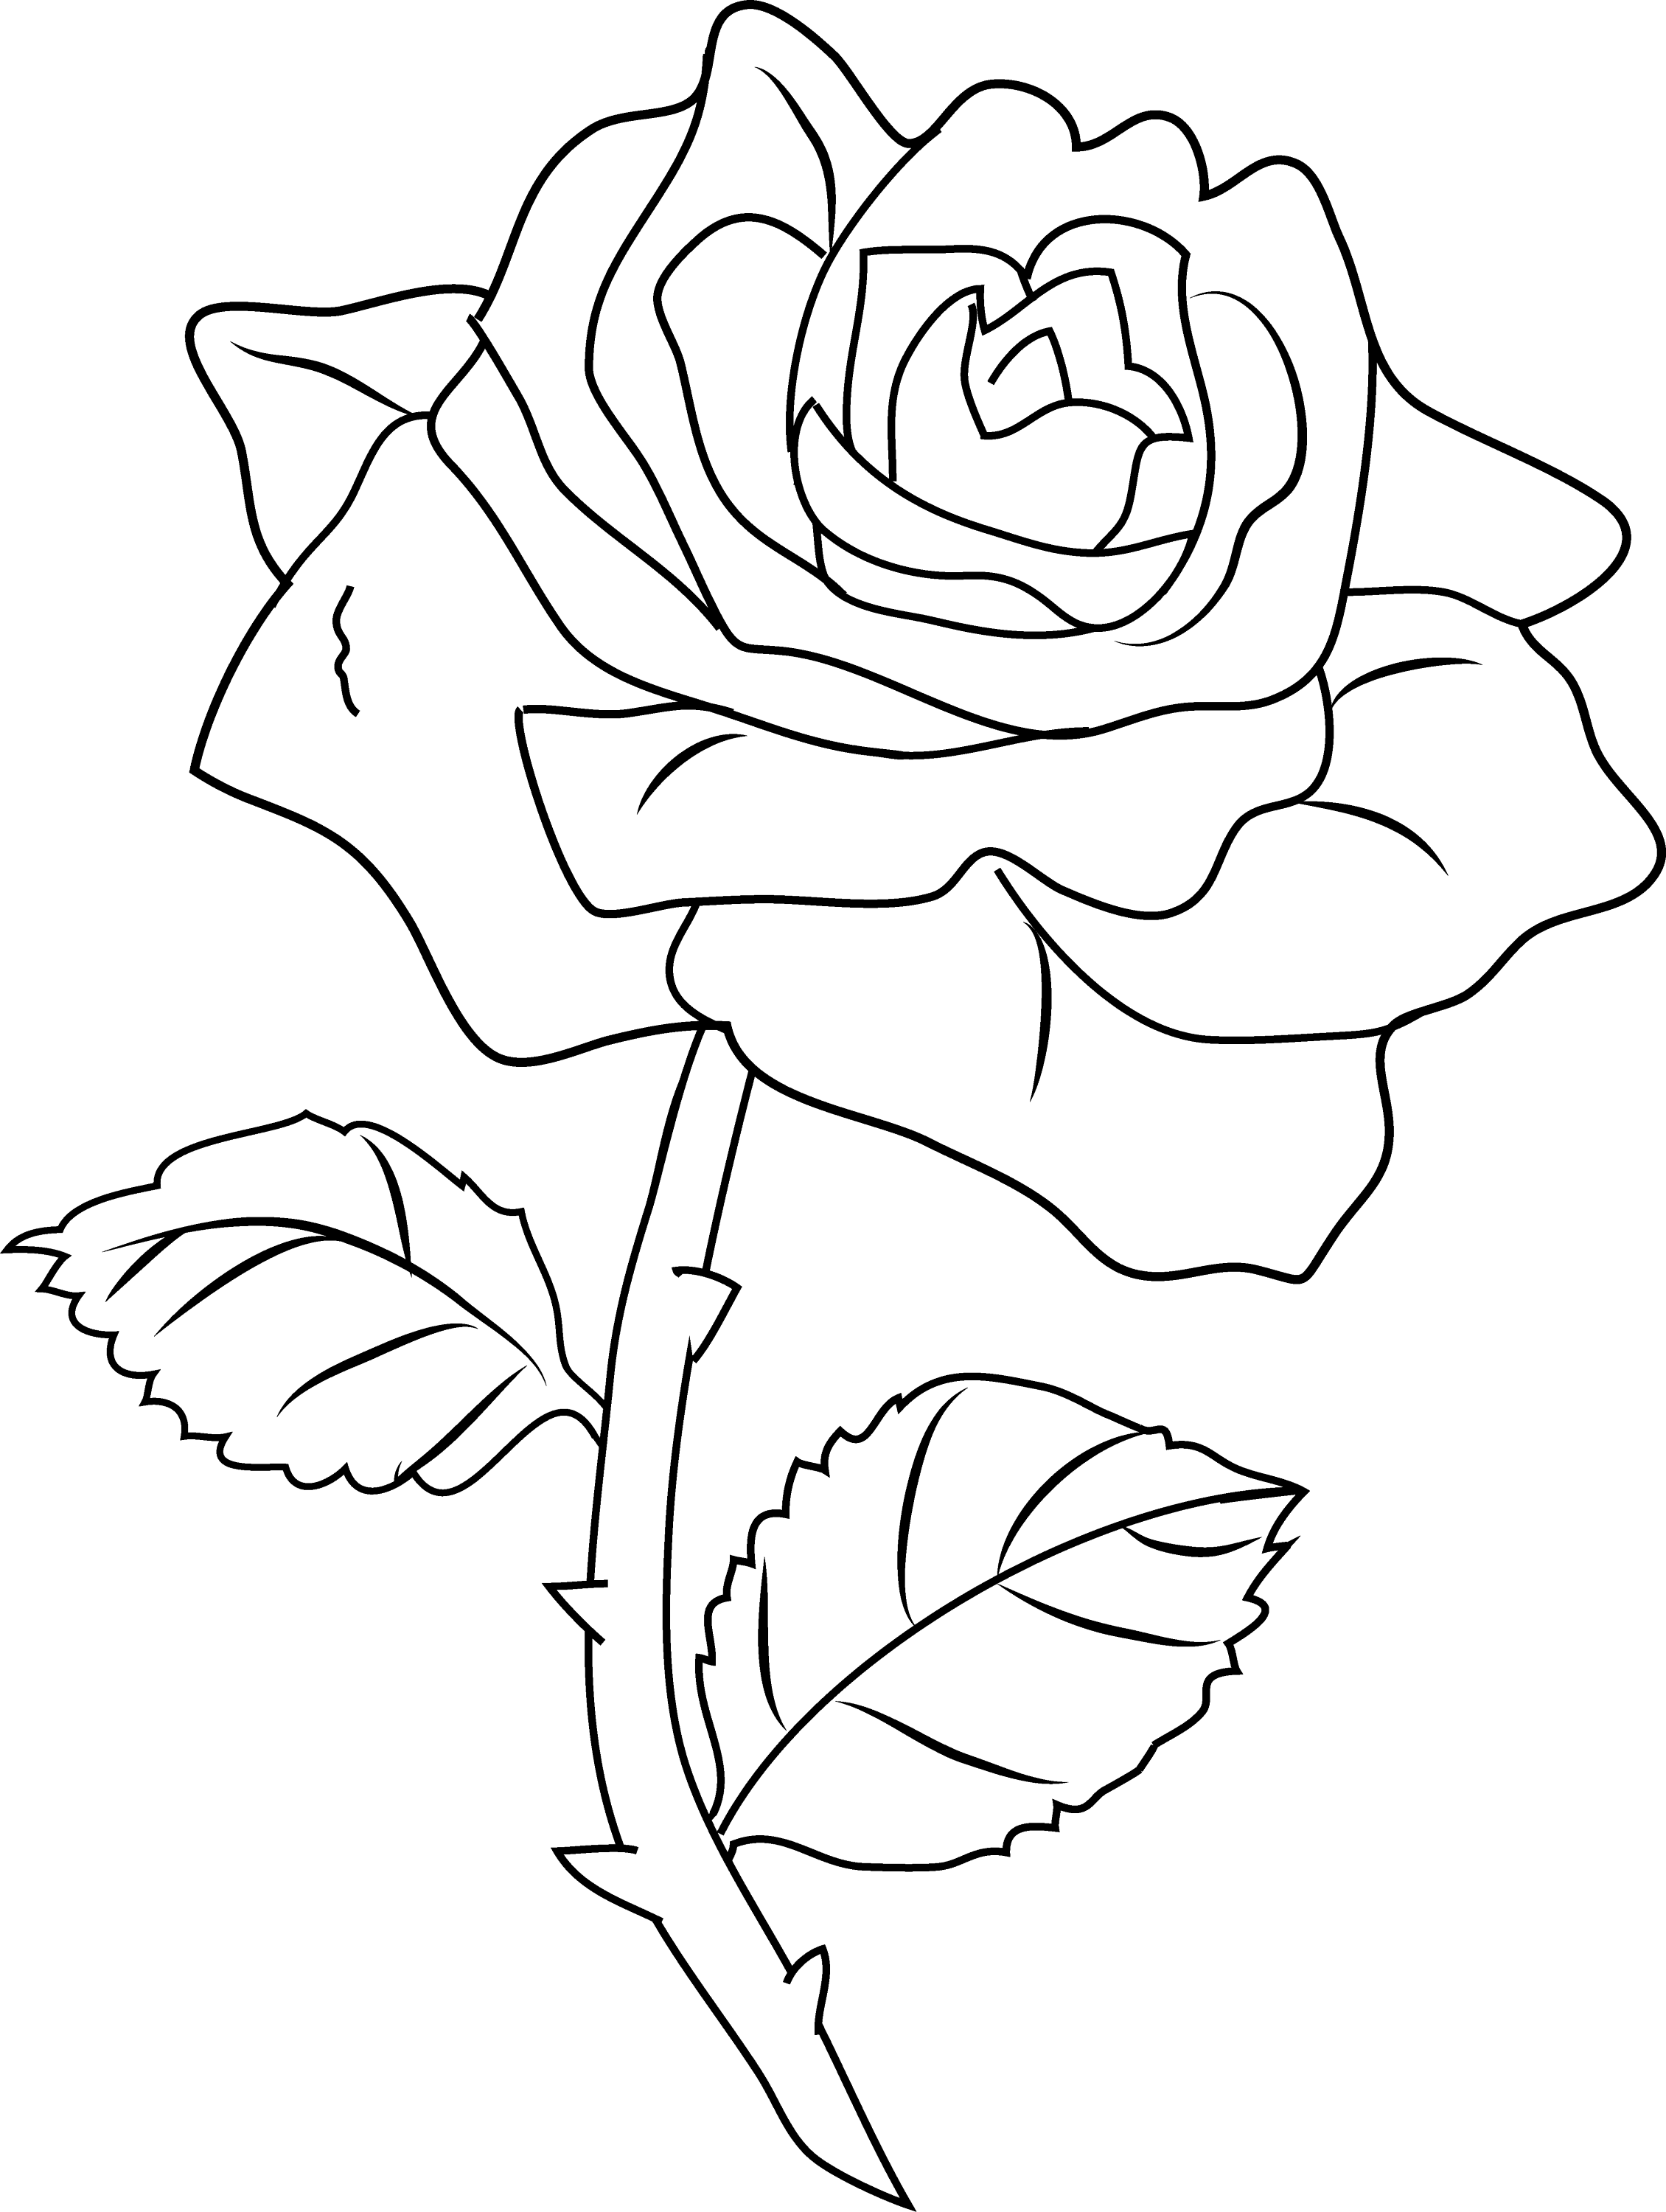 coloring image of a flower pretty rose coloring page free clip art coloring of a flower image